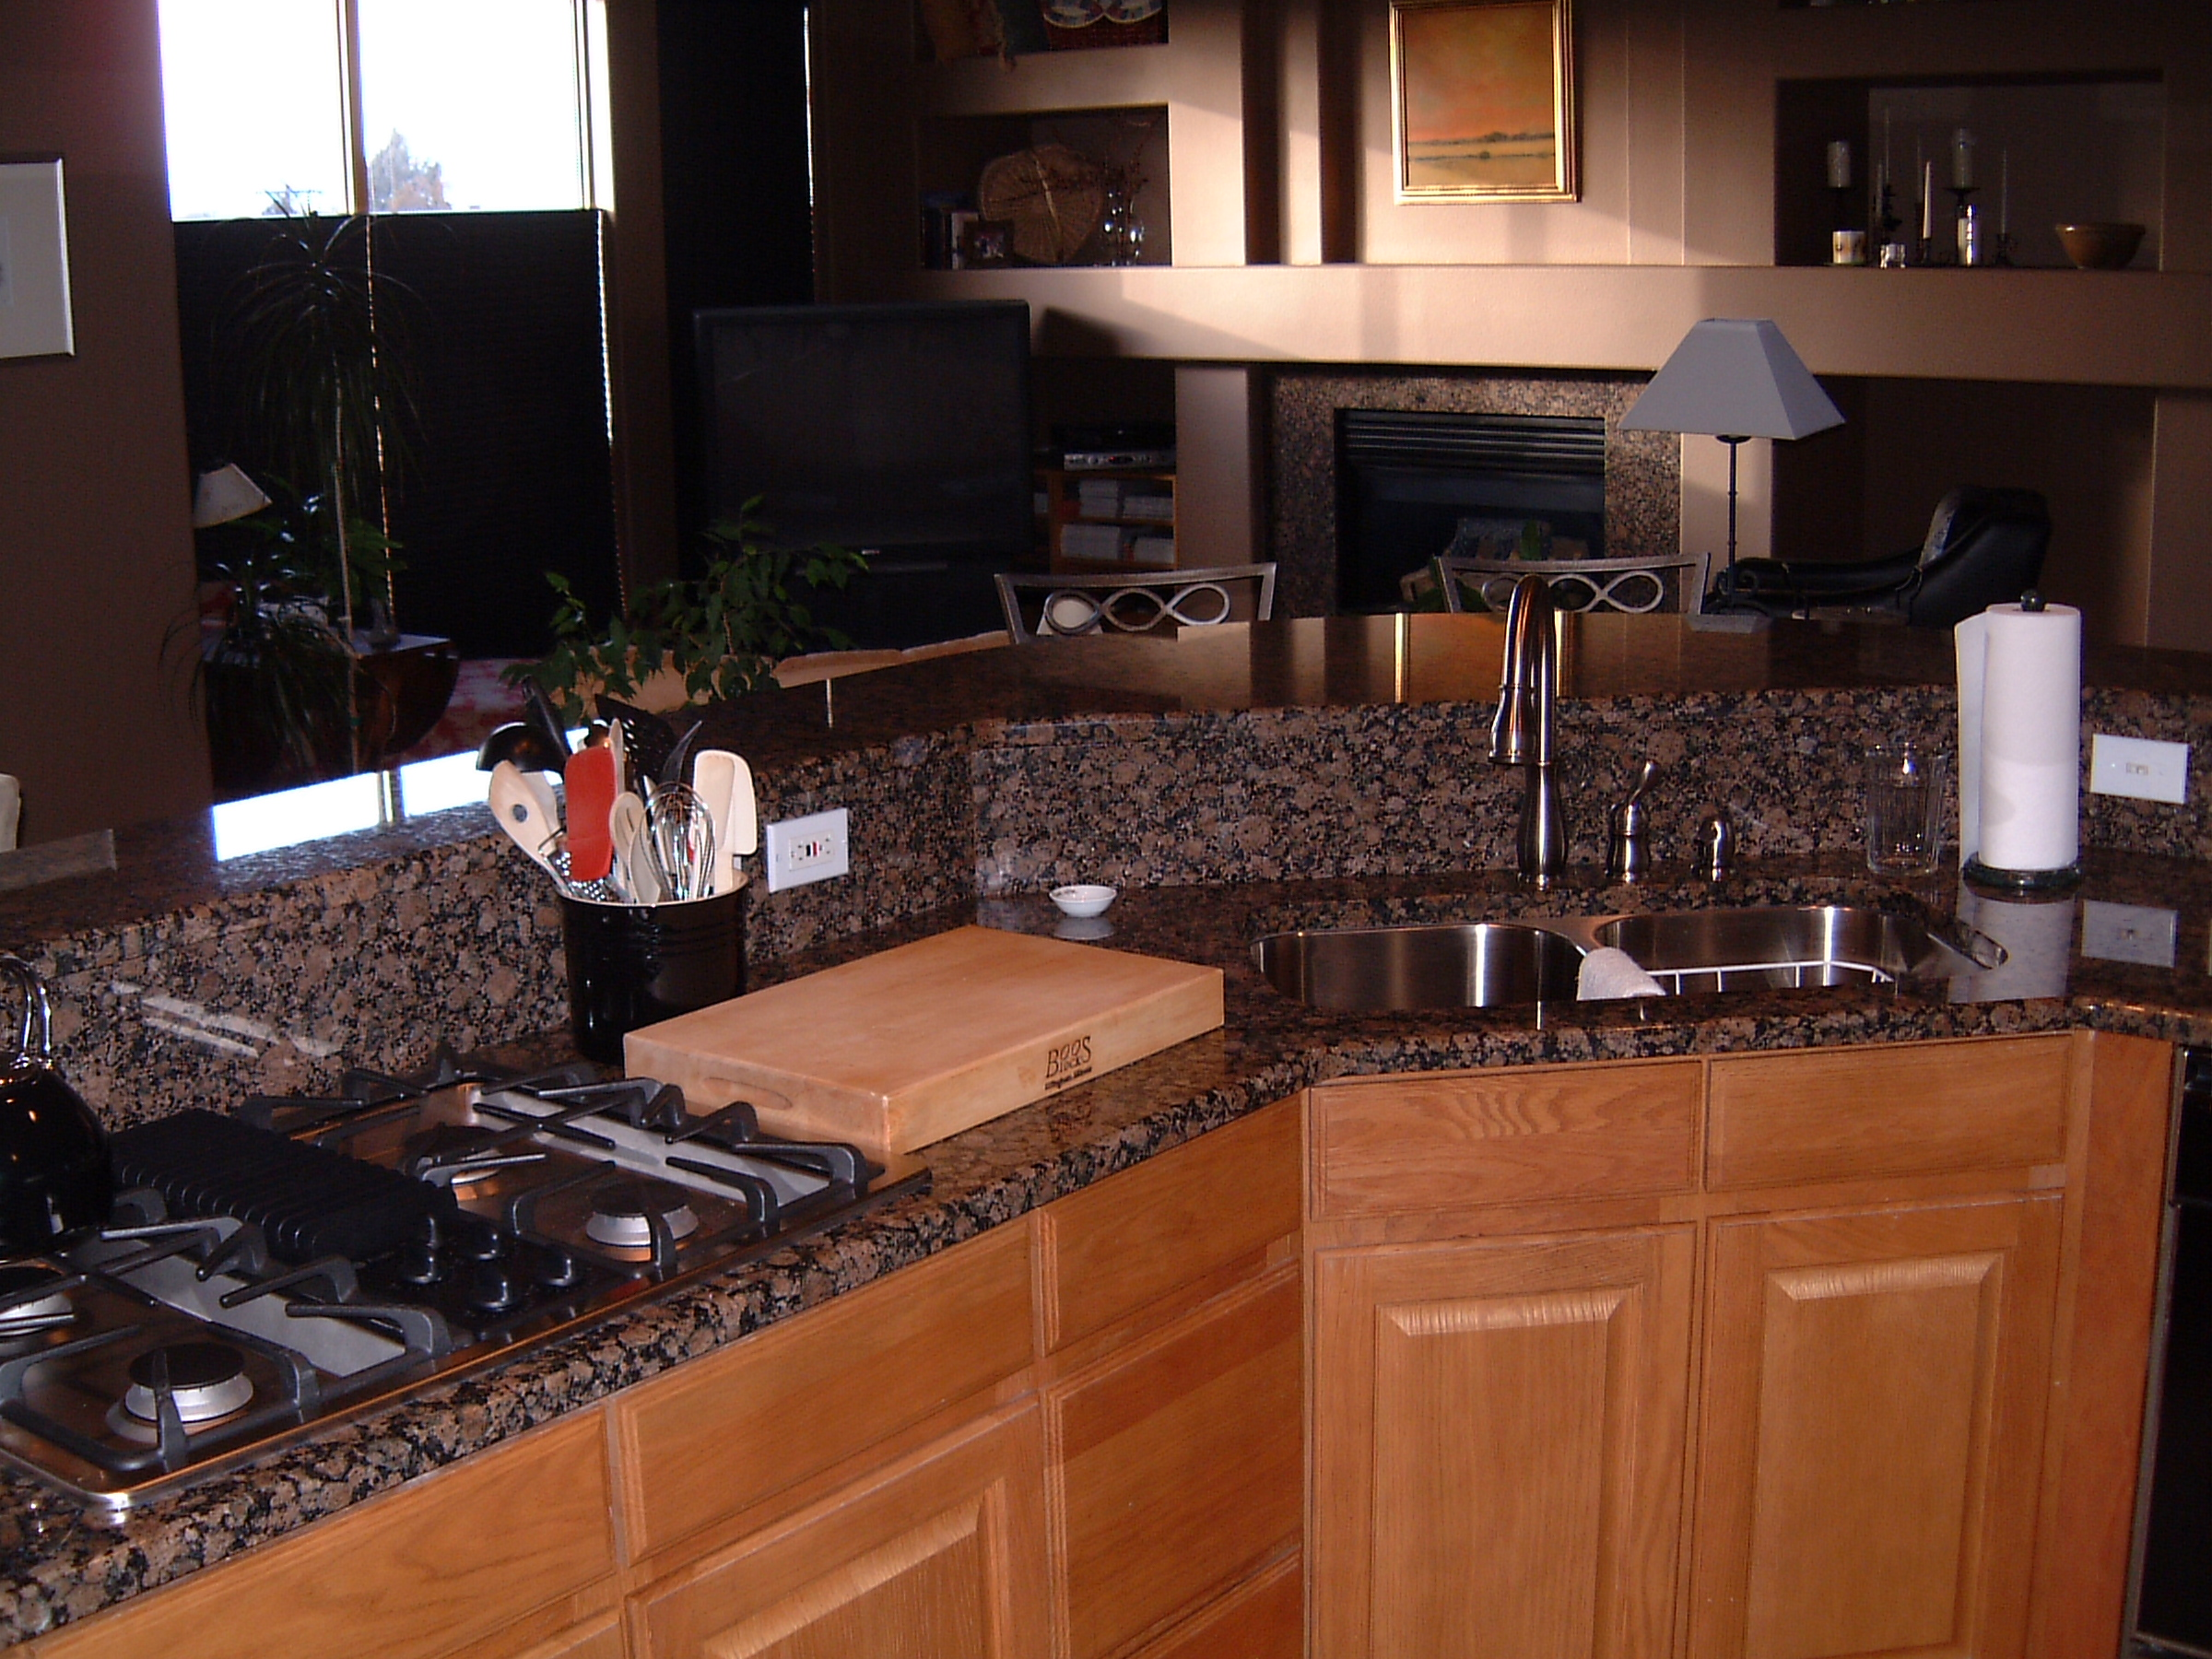 ... Dons Custom Longmont and Boulder Countertops and Cabinets 23a - Beautiful Open Living Kitchen Countertop &